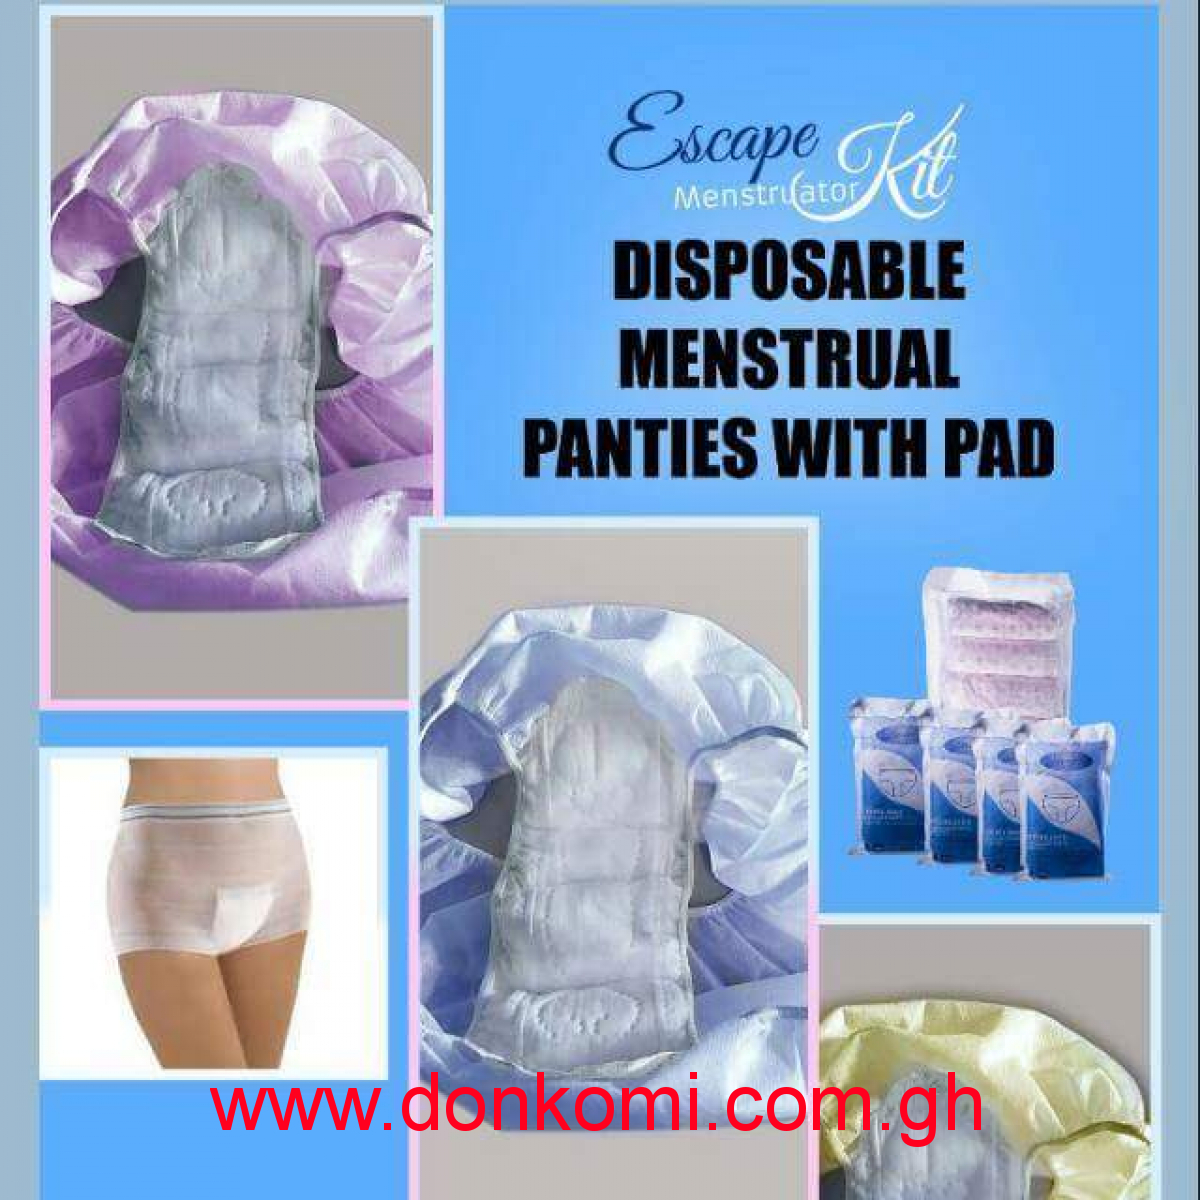 Disposable Menstrual panties with pad